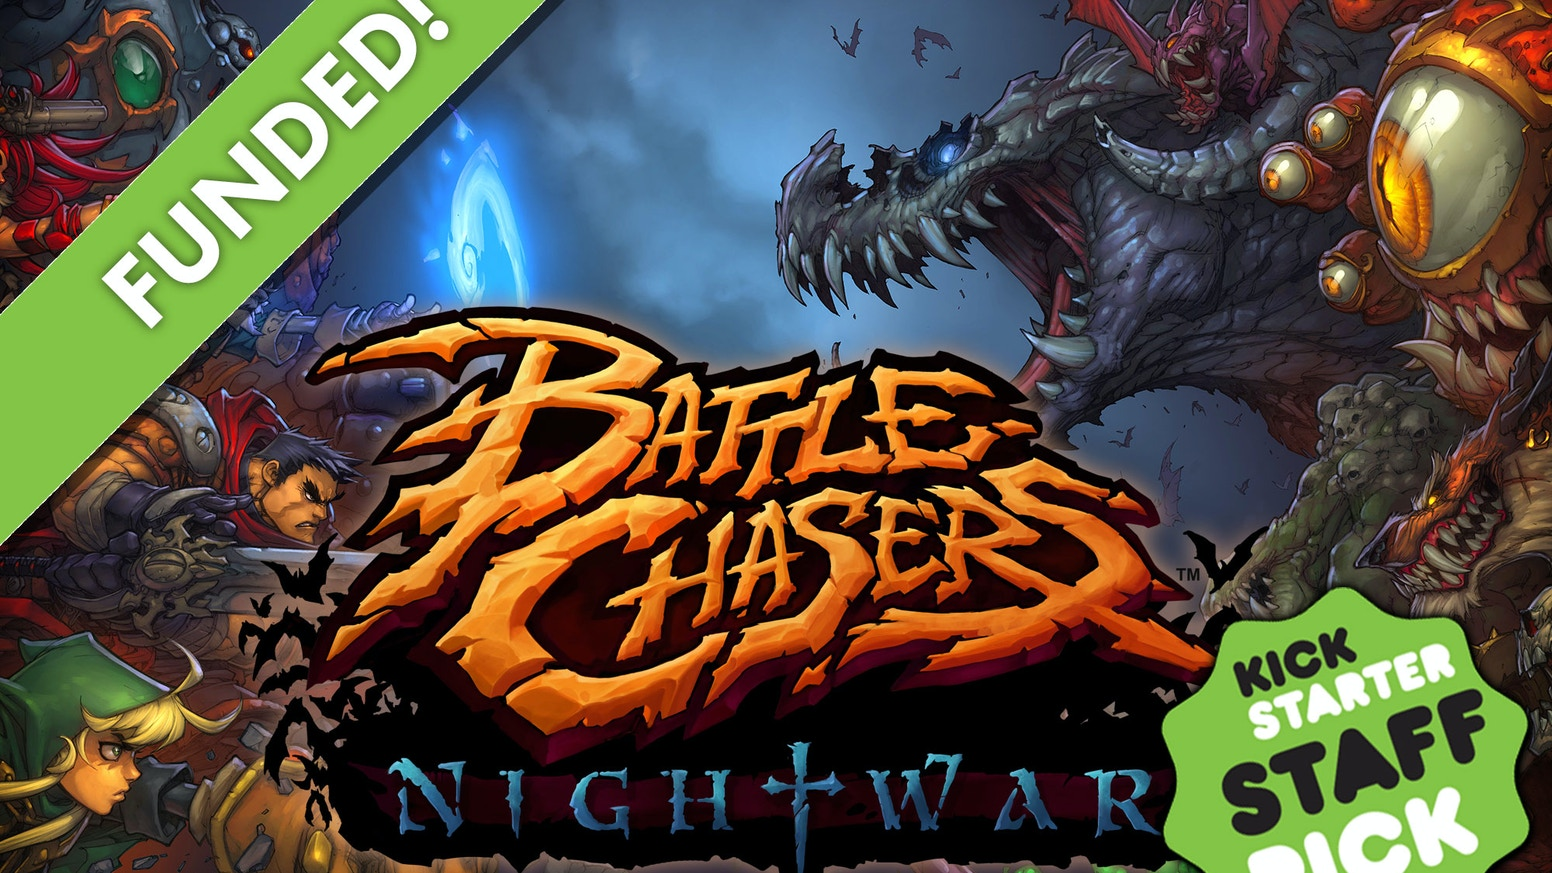 Classic JRPG combat meets action packed dungeons and stylish storytelling. Use skills and strategy to survive a lush, brutal landscape. If you missed the campaign, you can still contribute on Battlechasers.com!